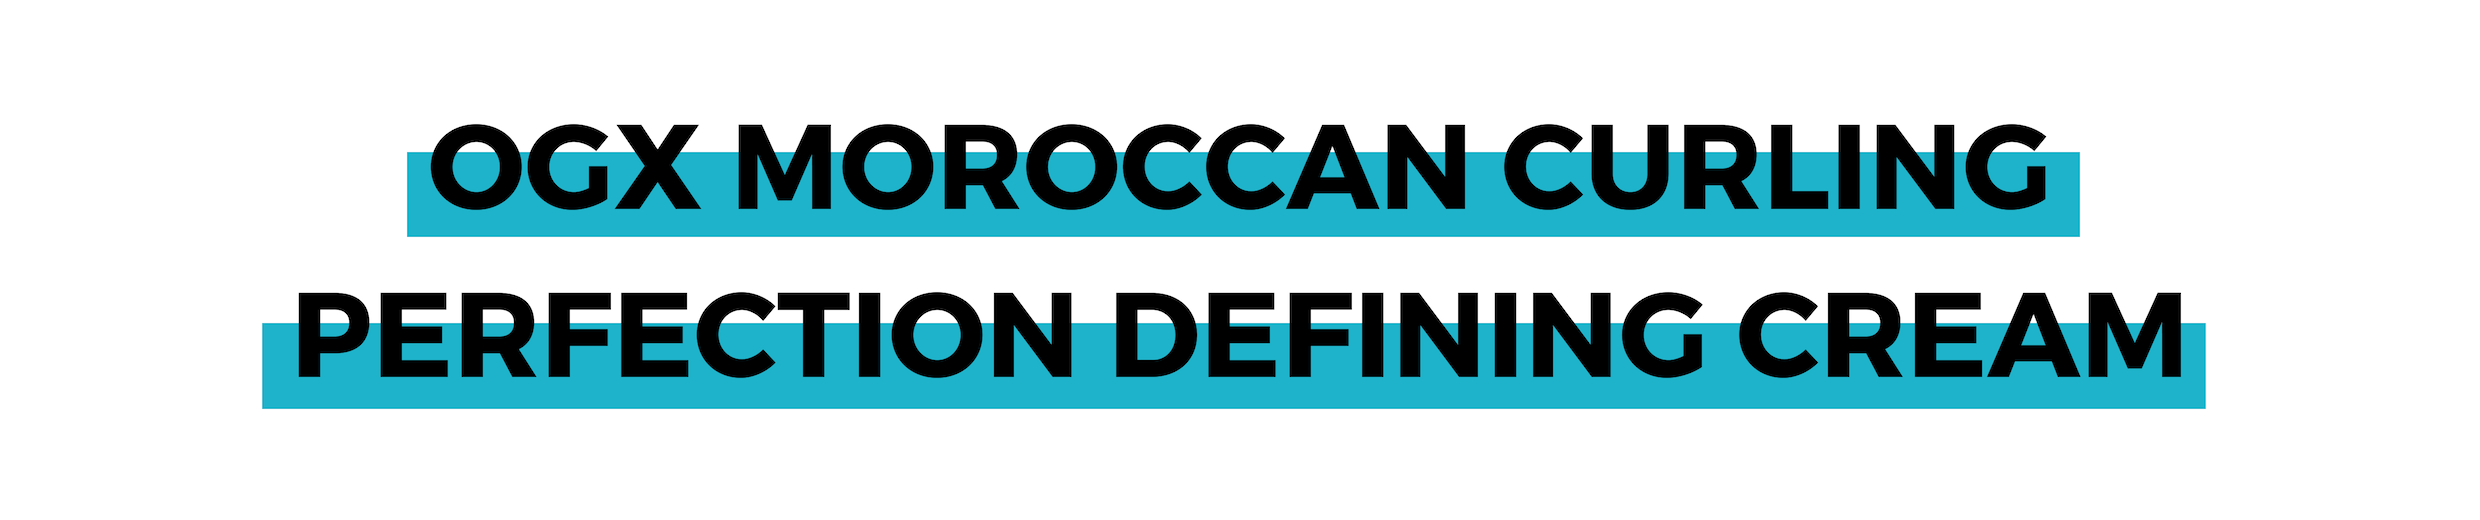 OGX MOROCCAN CURLING PERFECTION DEFINING CREAM.png